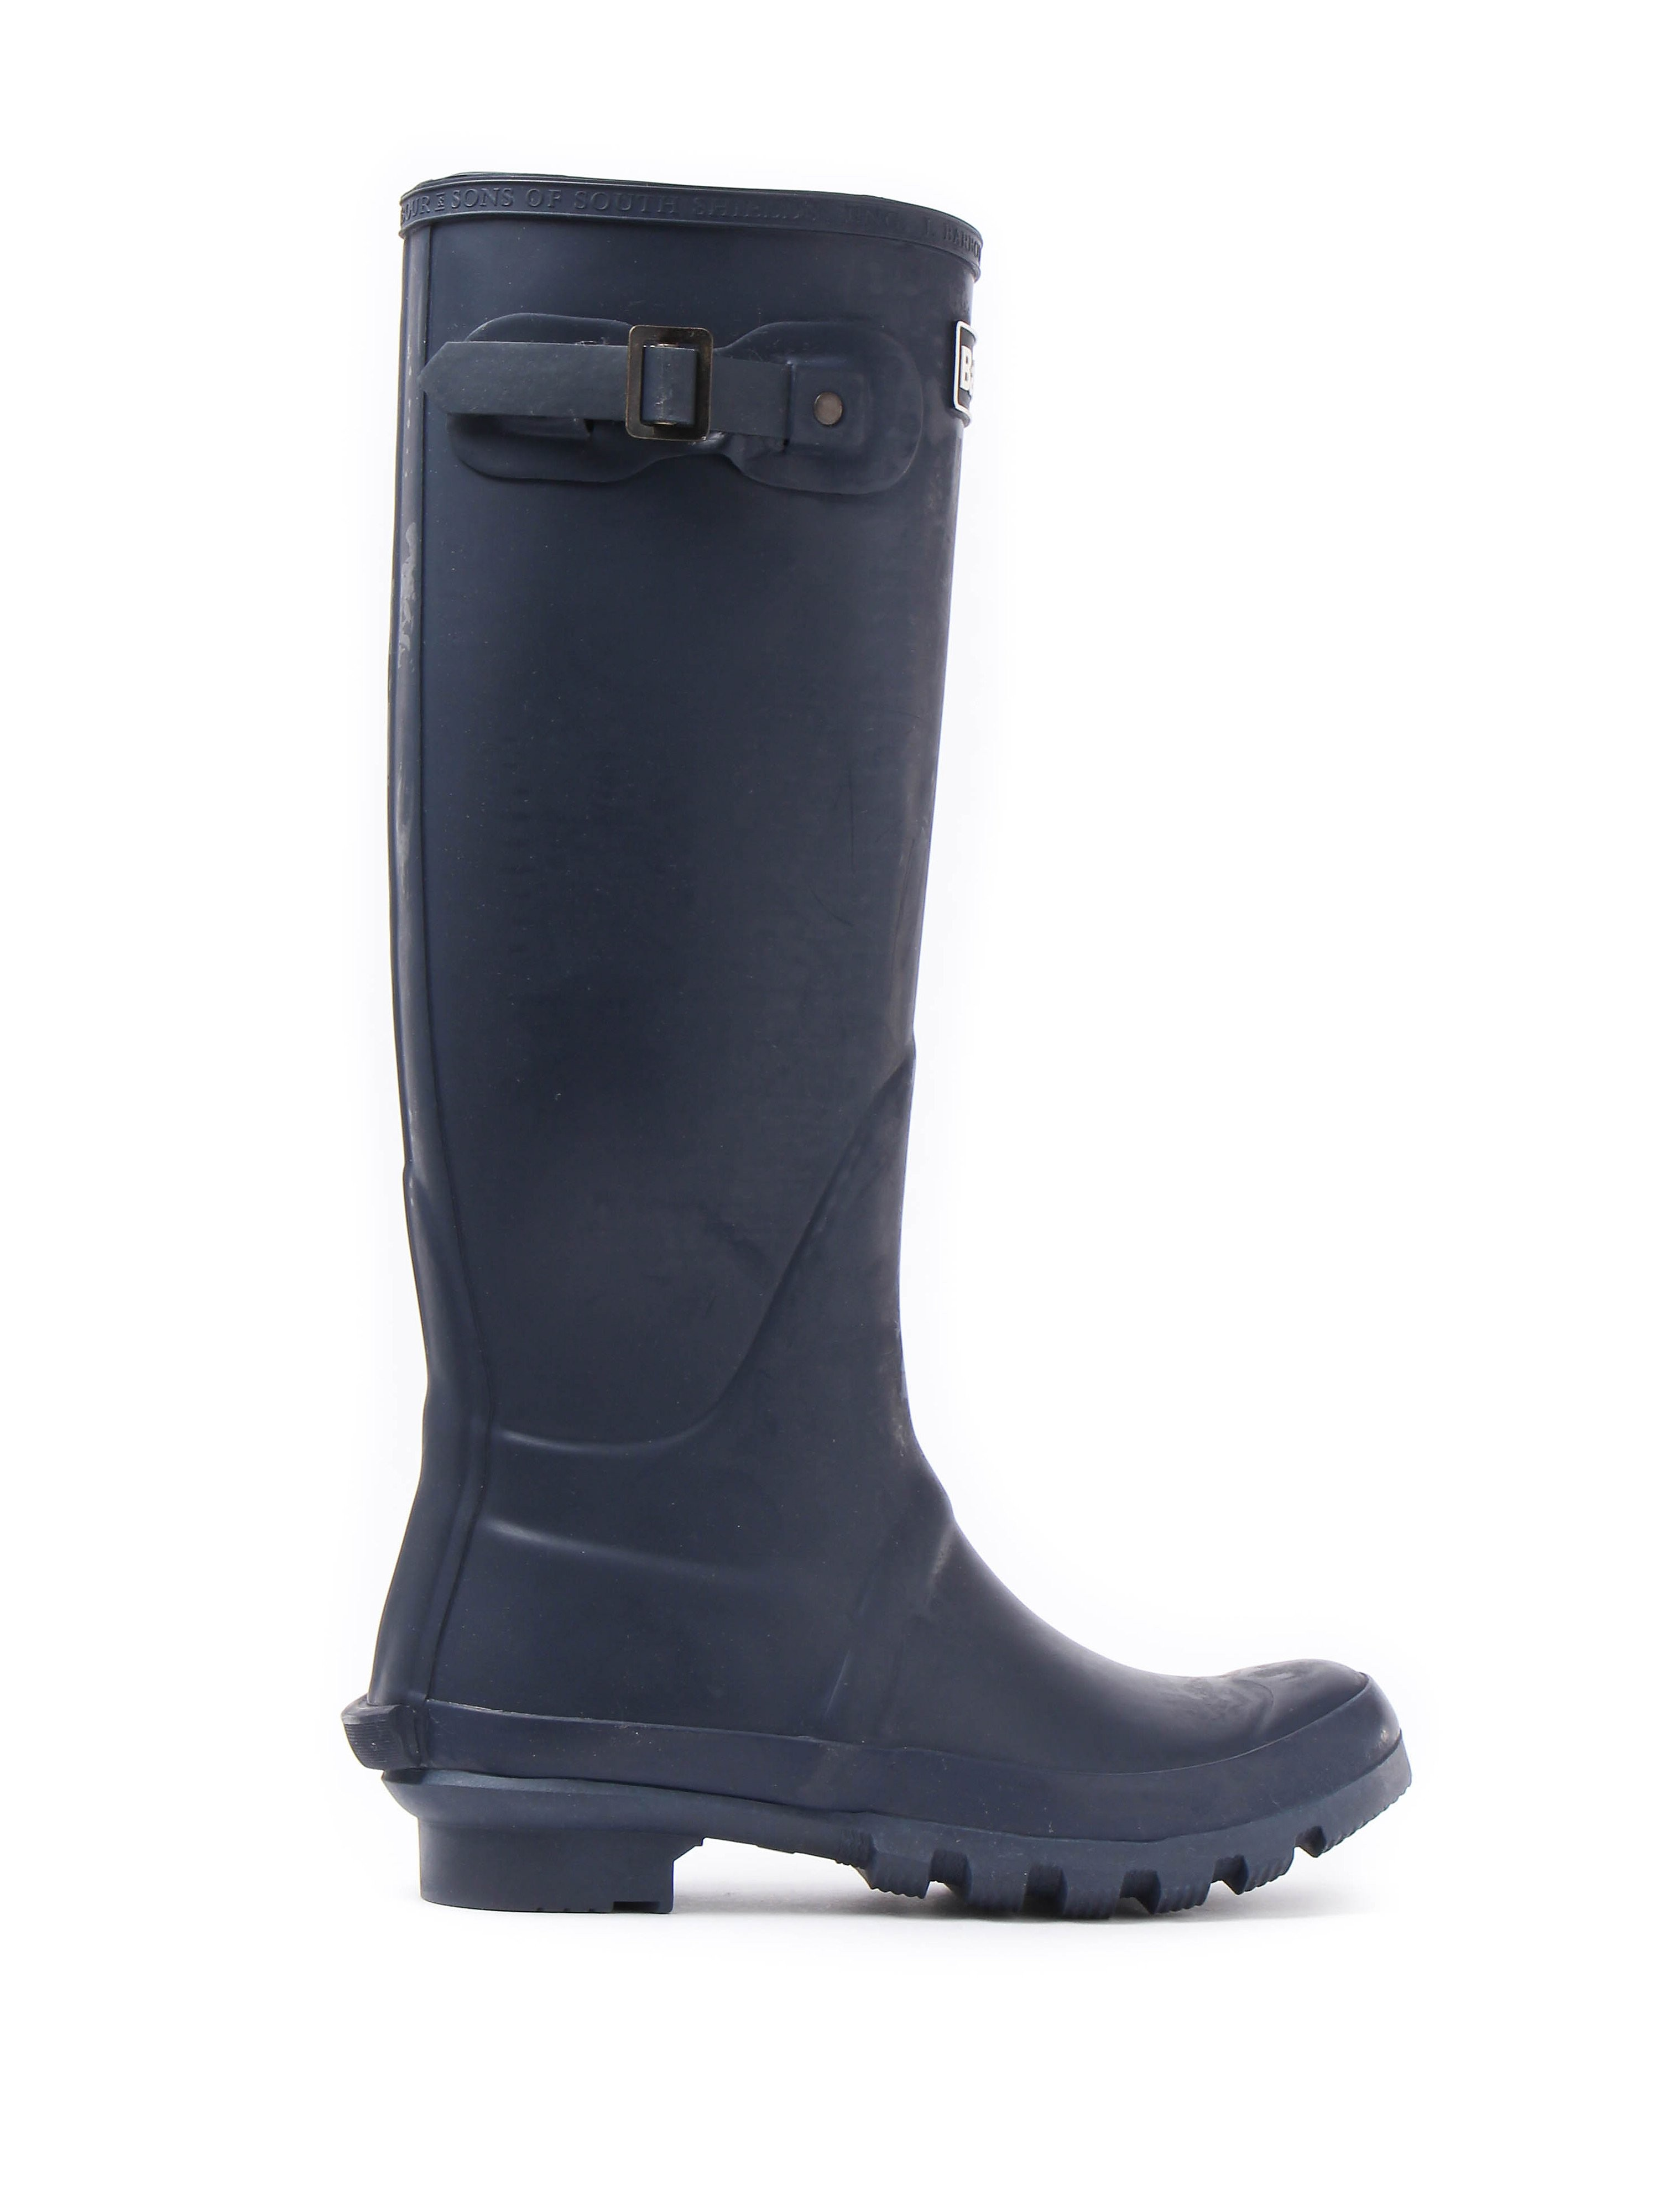 Barbour Women's Bede Wellington Boots - Navy